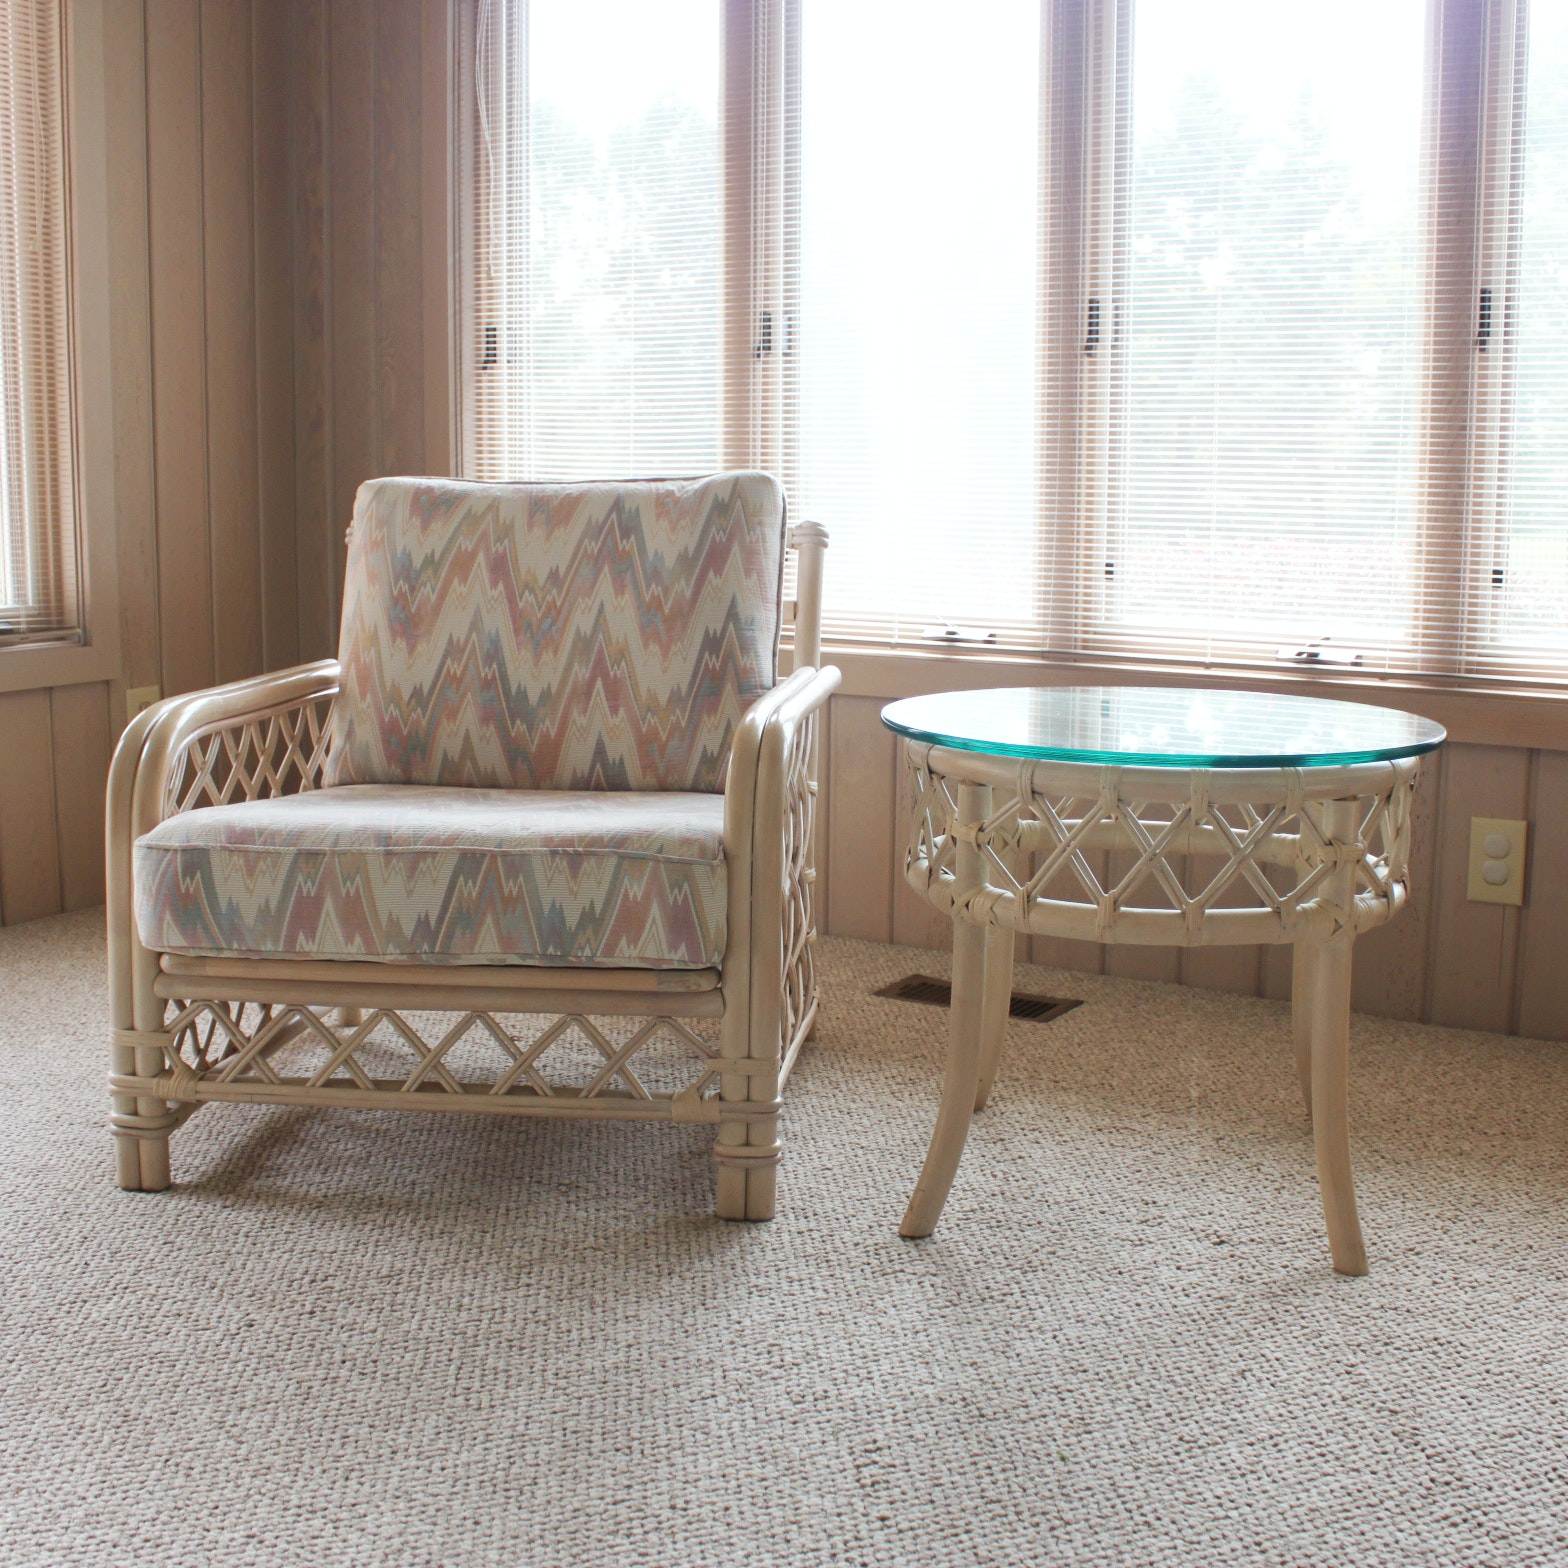 Ficks Reed Rattan Armchair and Side Table